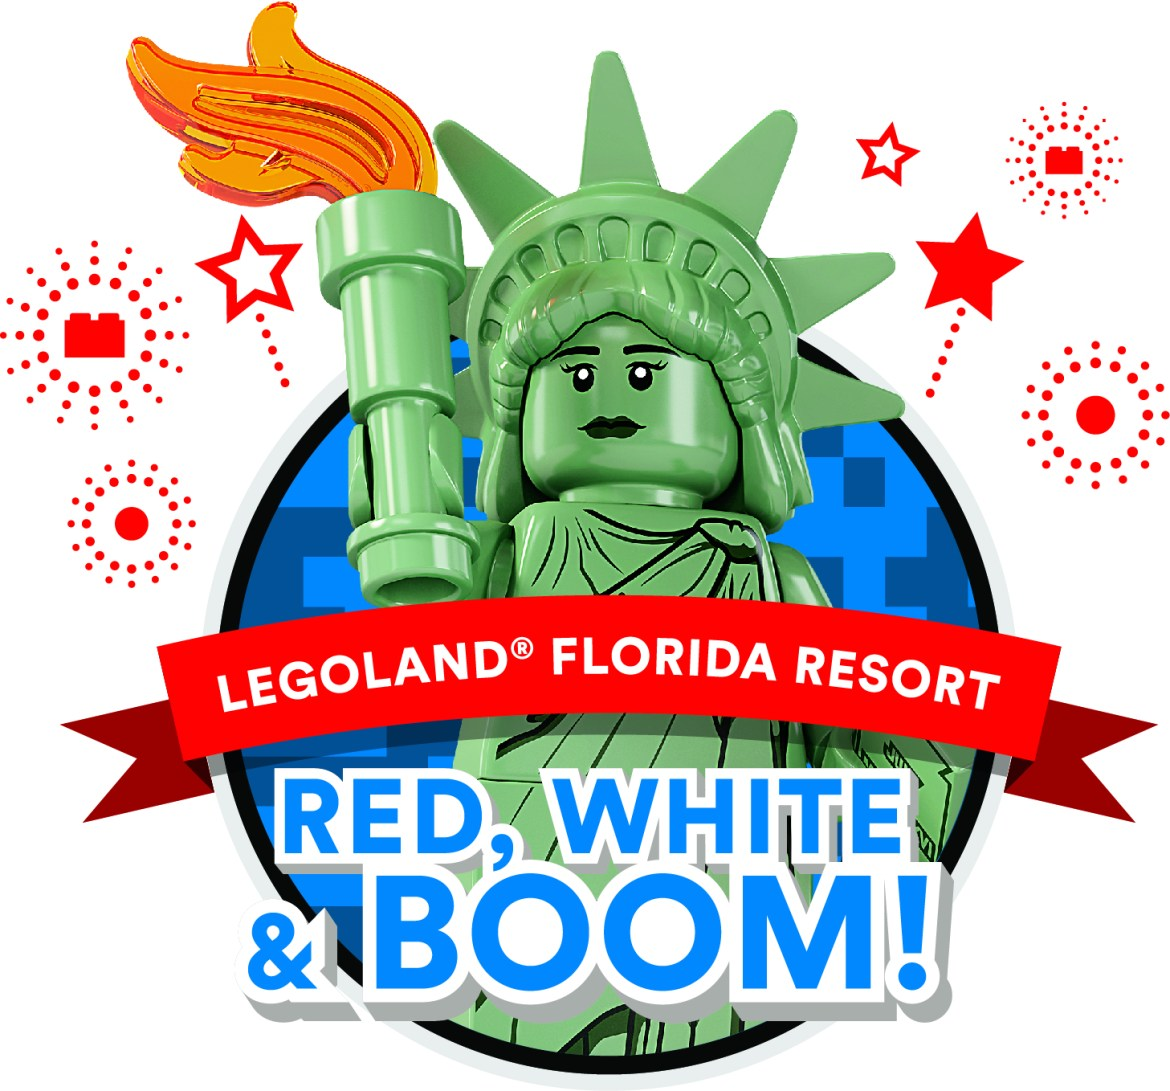 LEGOLAND Florida Resort Kicks Off Awe-Summer Event Series with Independence Day Celebration Red, White and Boom